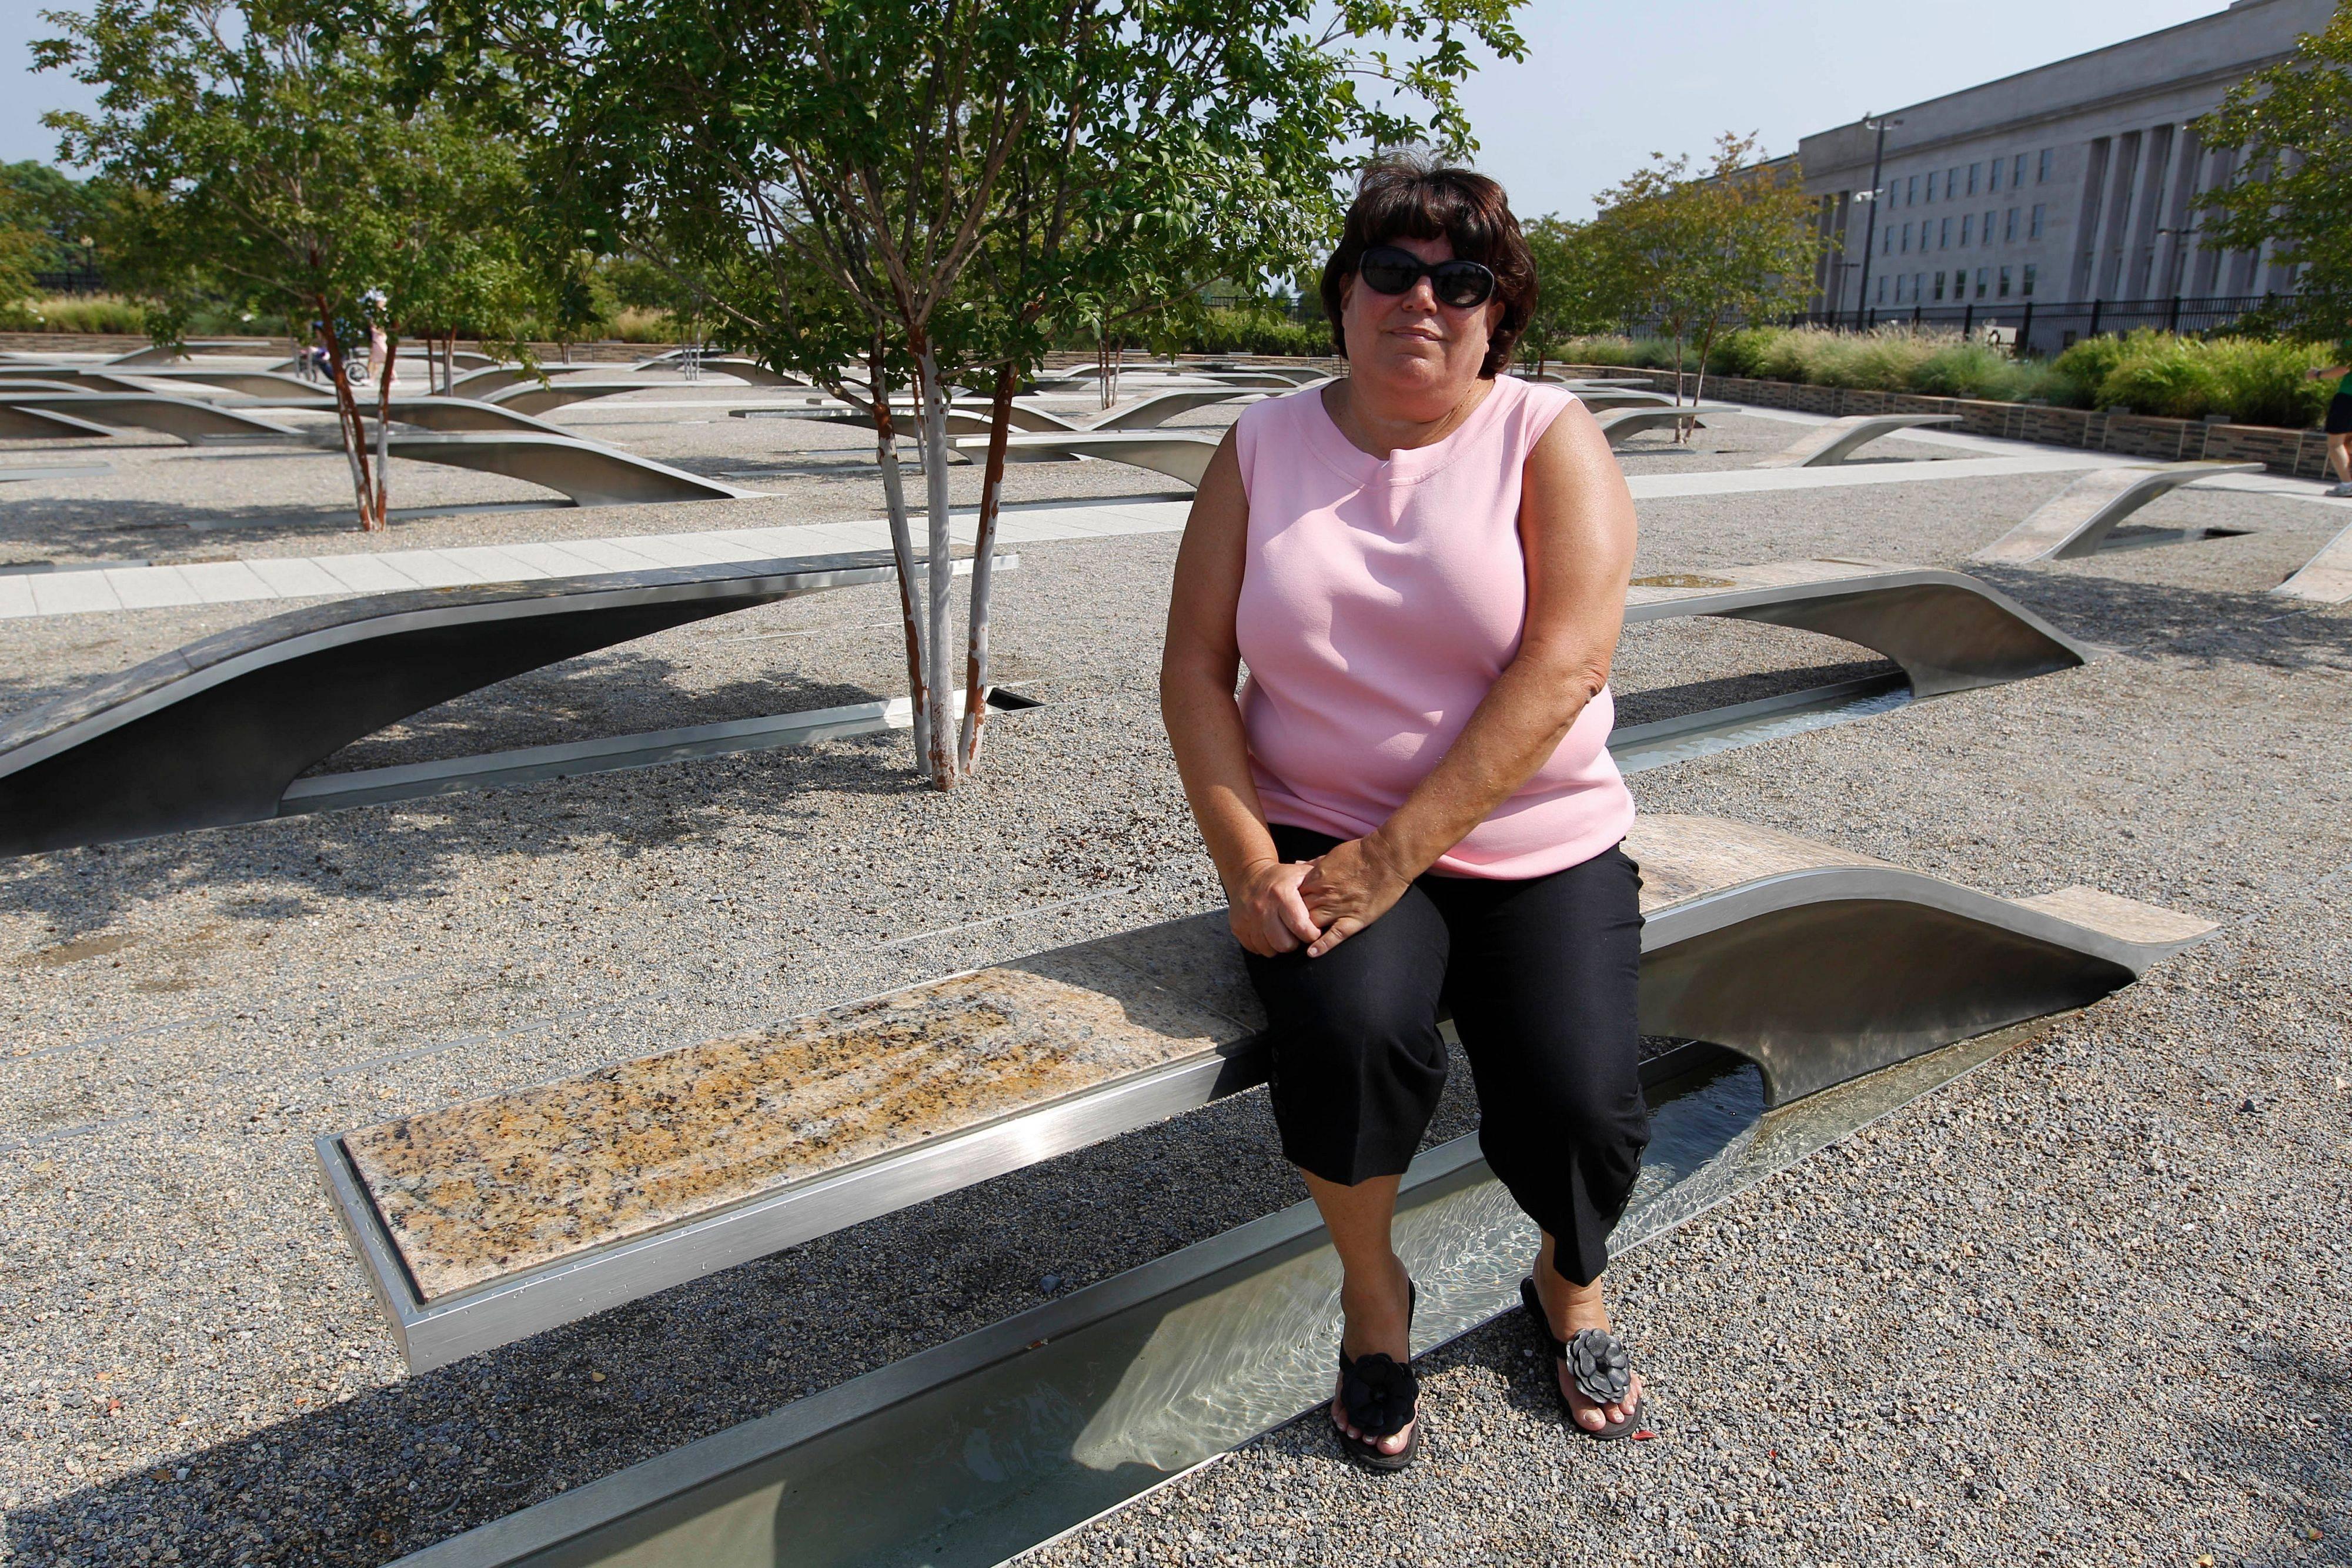 Volunteer docent Lisa T. Dolan sits on the bench that bears the name of her late husband, Navy Capt. Robert E. Dolan Jr., who died Sept. 11, 2001, in the terrorist attack on the Pentagon in Arlington, Va.